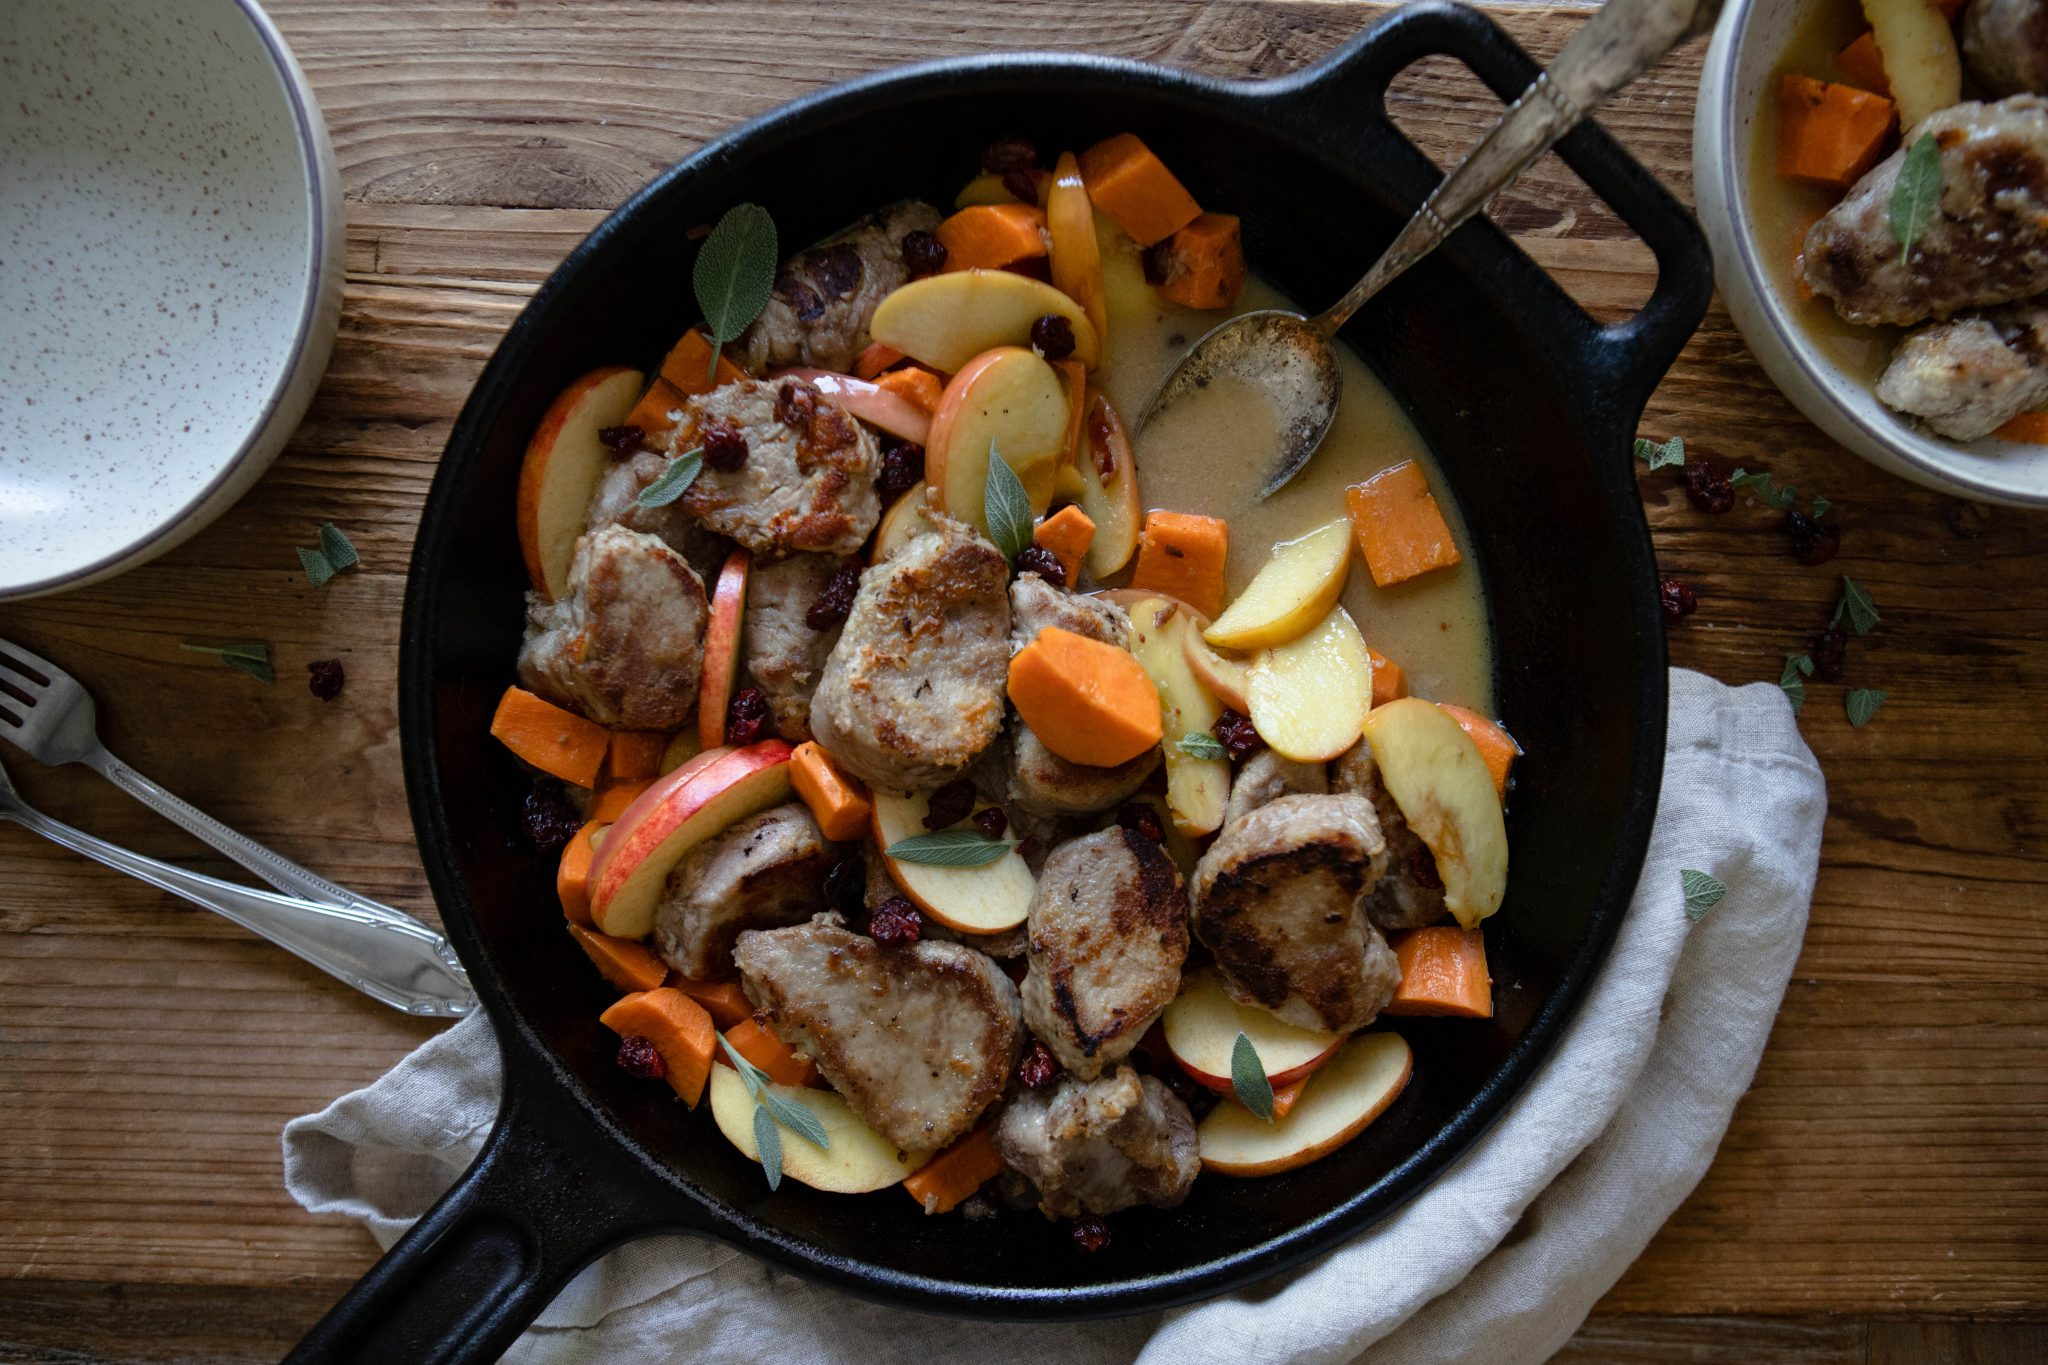 black cast iron skillet with pork tenderloin, apples and sweet potatoes on a wooden board